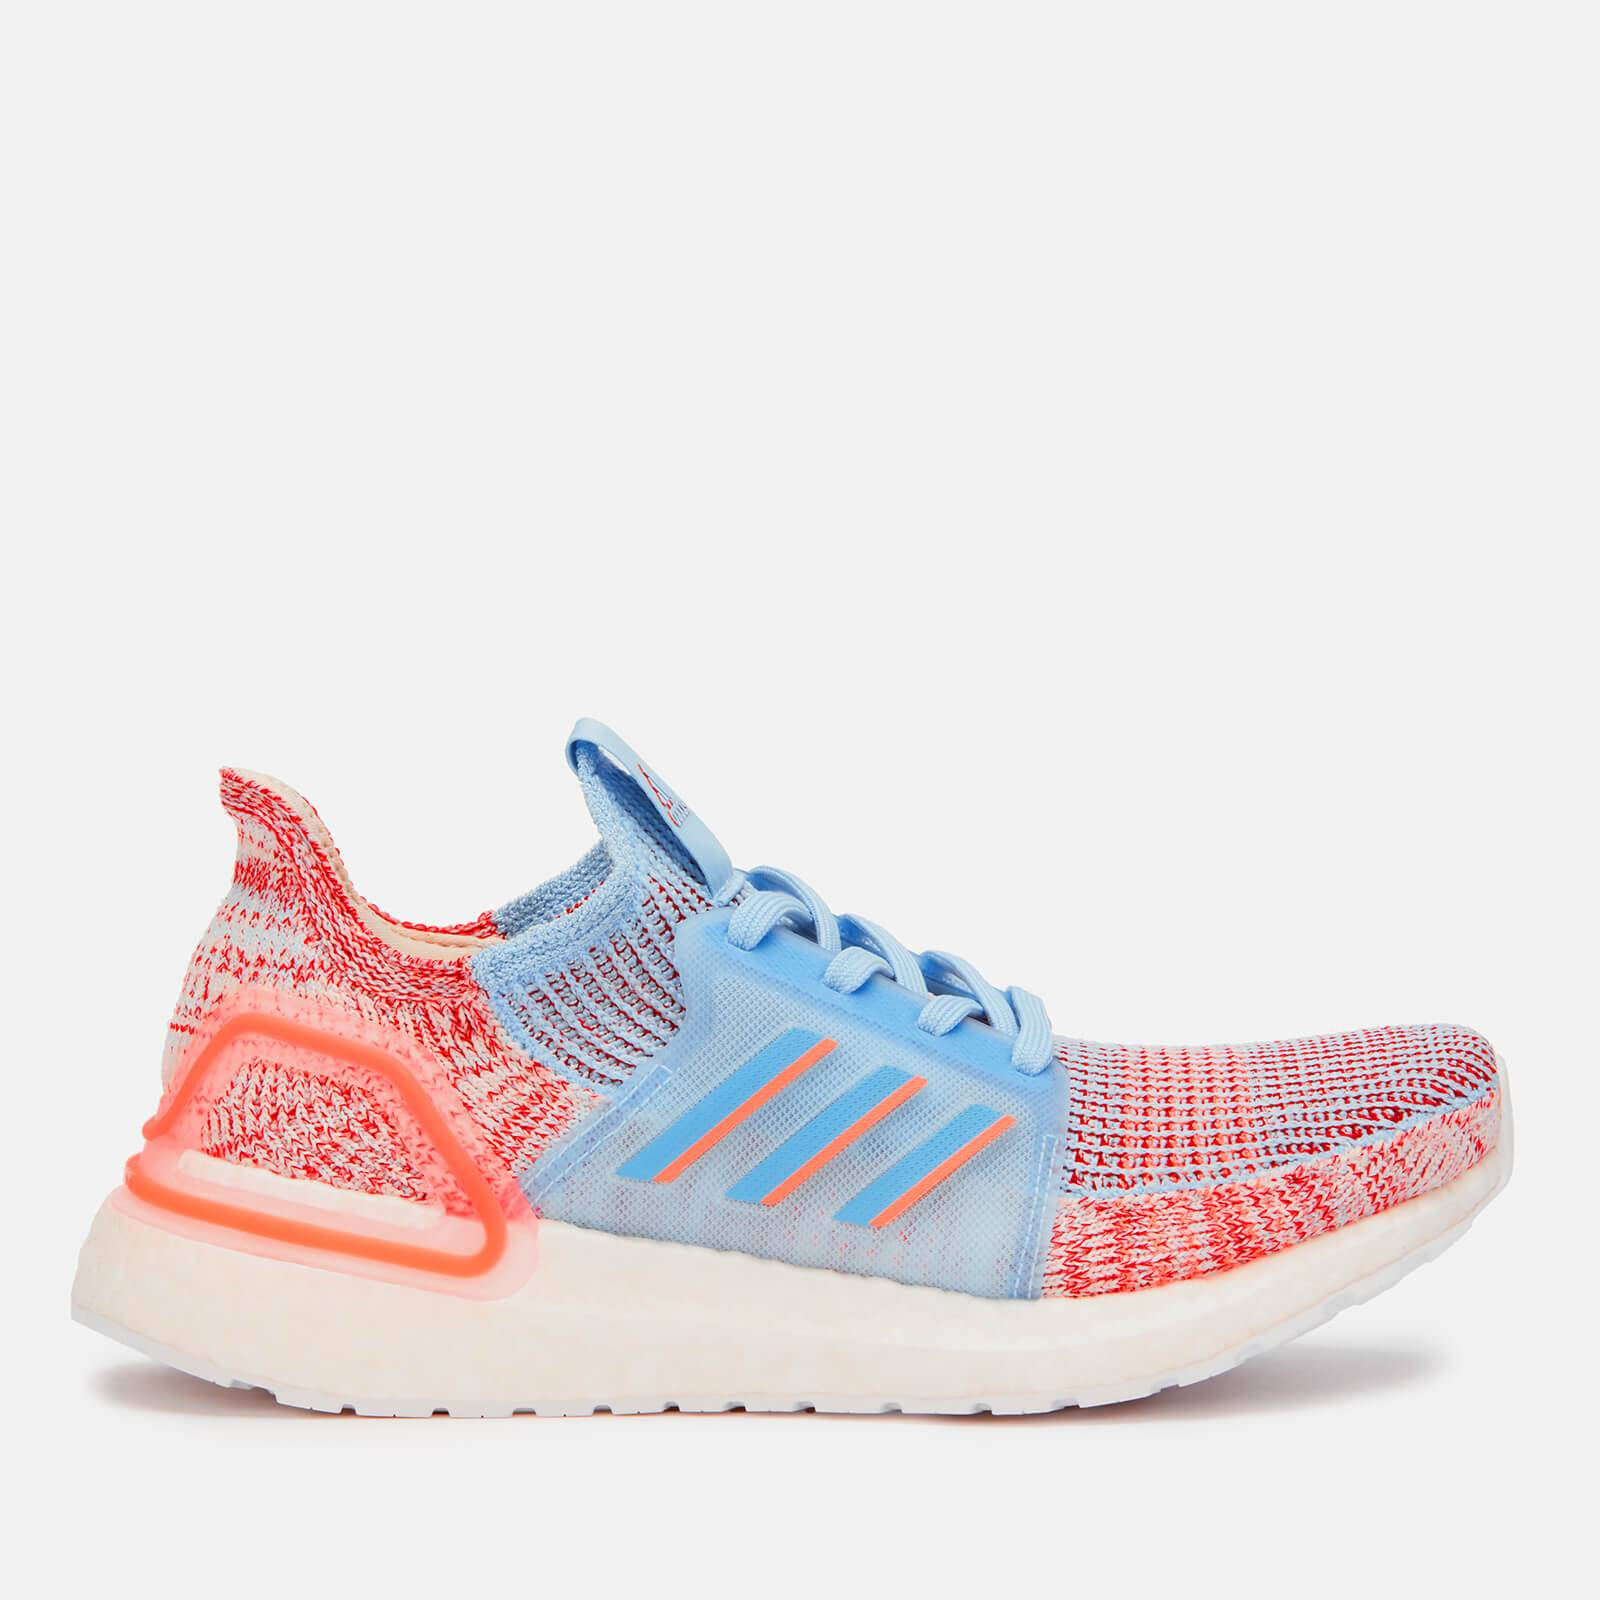 adidas Women's Ultraboost 19 Trainers - Blue/Orange - UK 8 - Multi